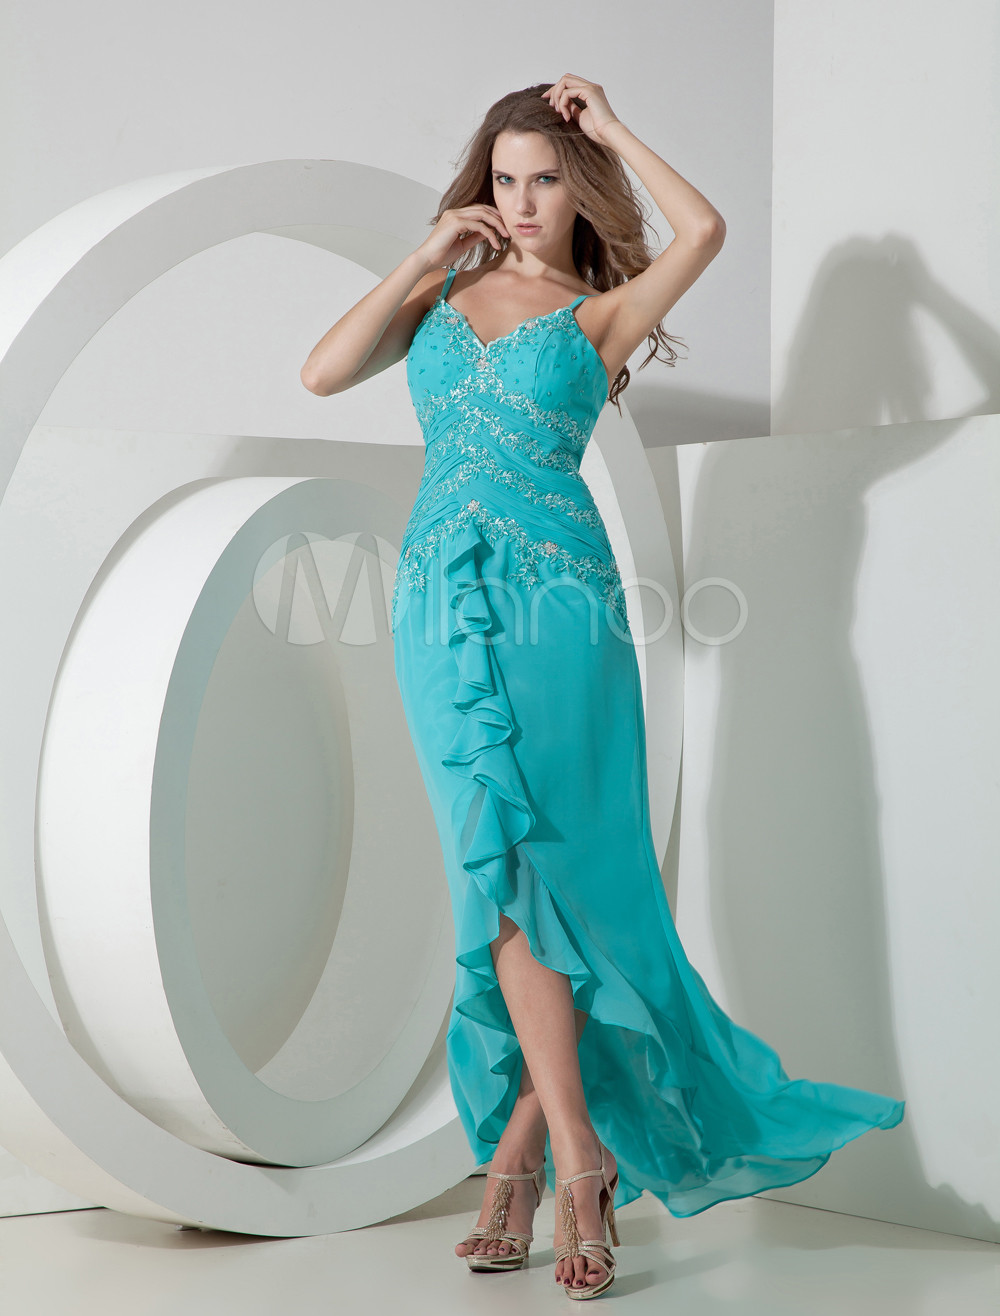 Hunter Green Spaghetti Satin Chiffon Long in Back Short in Front Prom Dress/Homecoming Dress